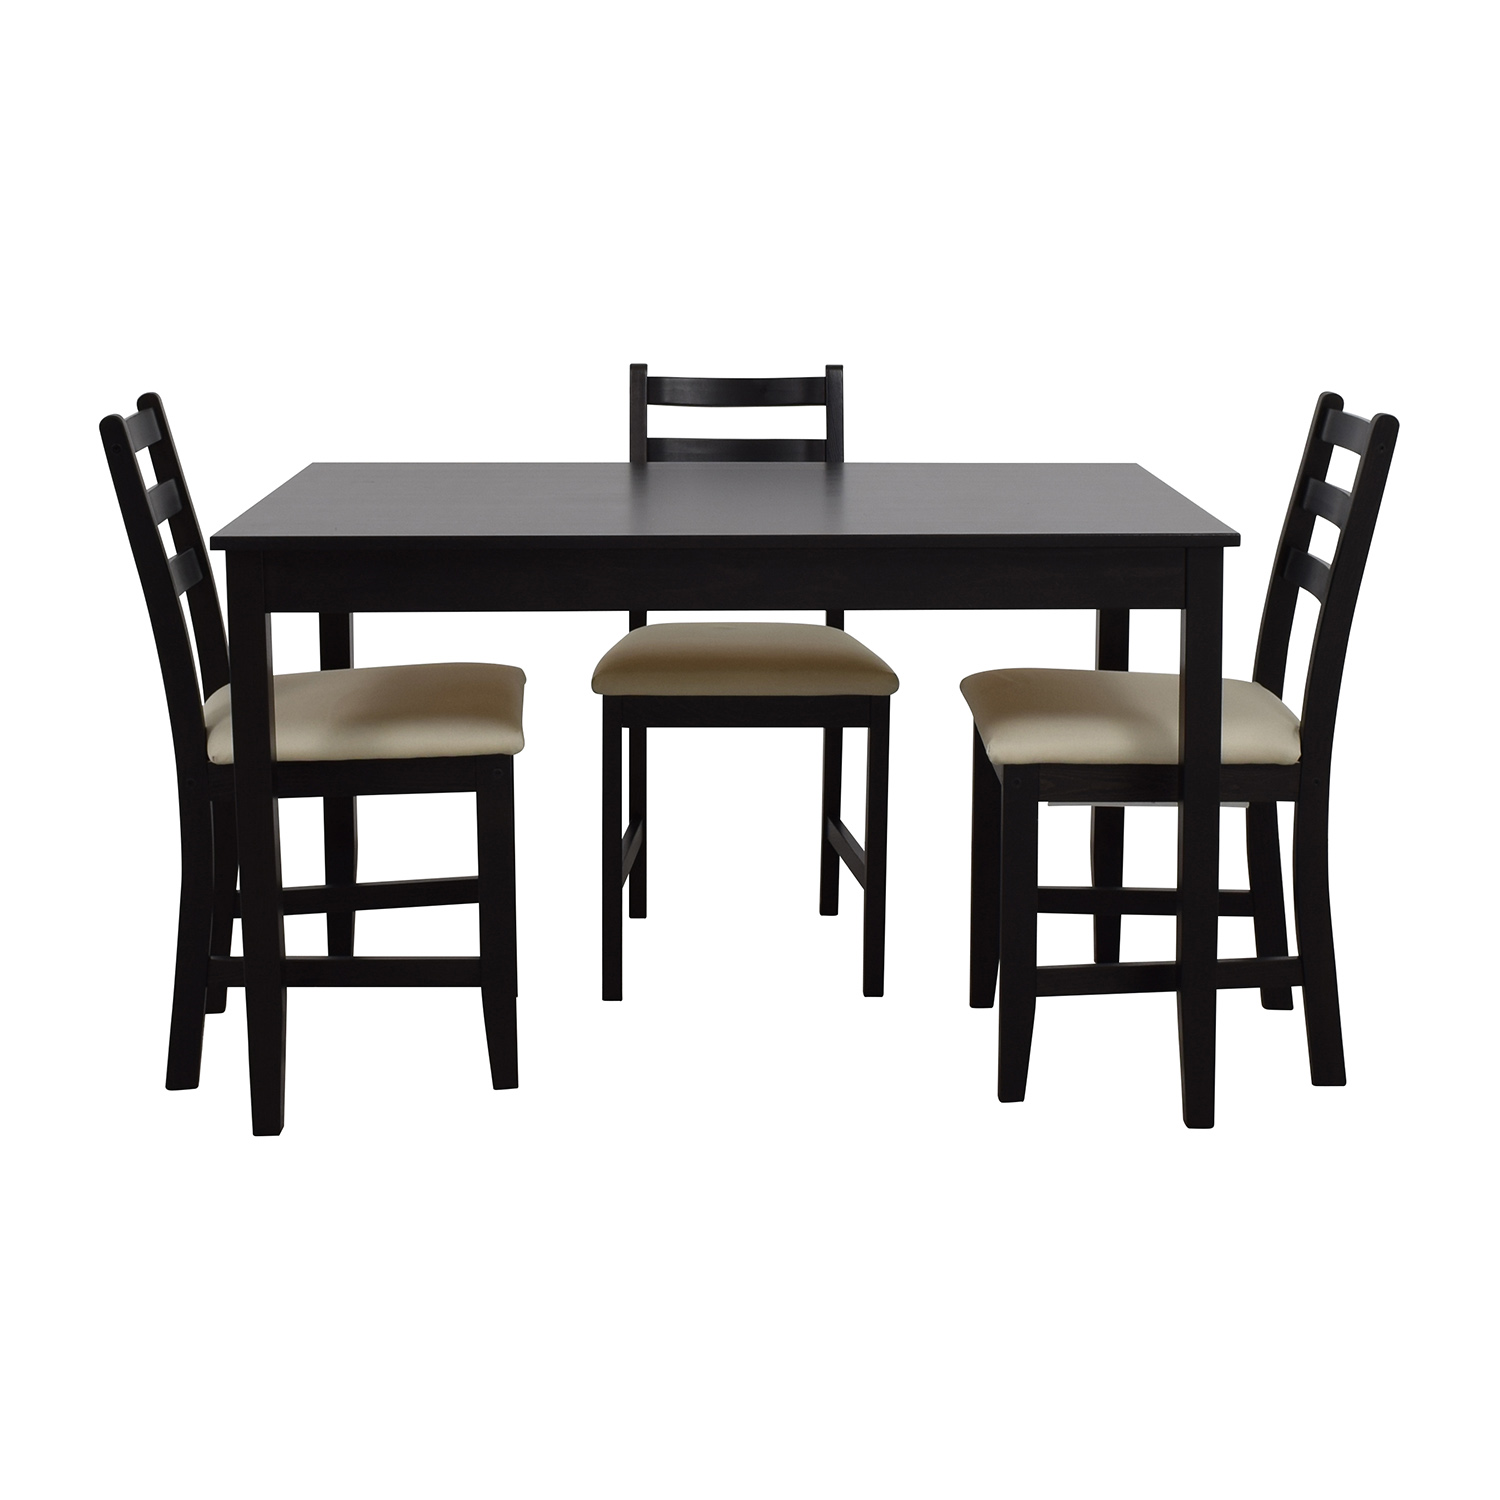 IKEA IKEA Wood Dining Set with Three Chairs dimensions